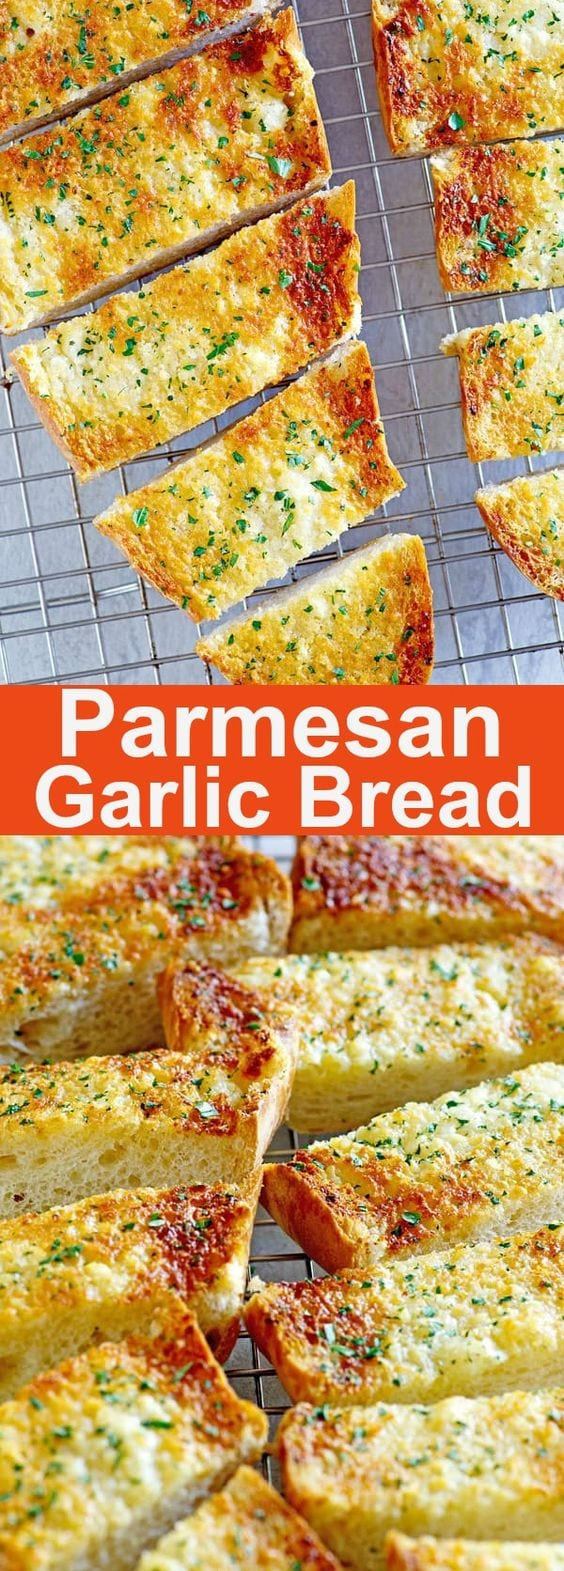 Parmesan Garlic Bread - Turn regular French bread into delicious, buttery parmesan garlic bread with this quick and easy recipe. | rasamalaysia.com